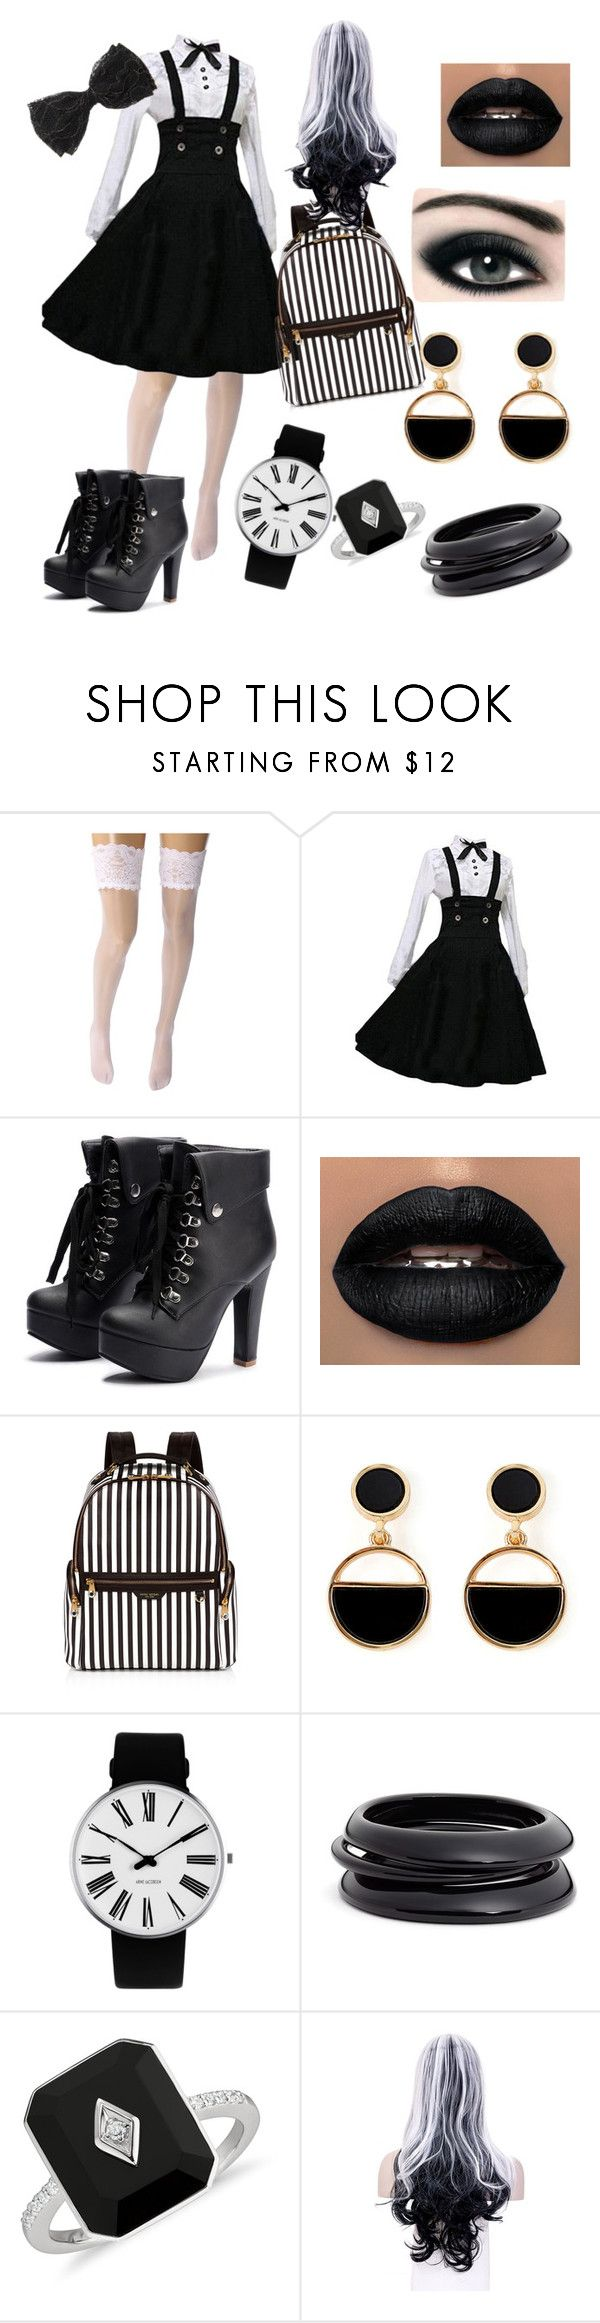 """""""27"""" by urooj684 ❤ liked on Polyvore featuring Wolford, Max Factor, Henri Bendel, Warehouse, Rosendahl and ZENZii"""